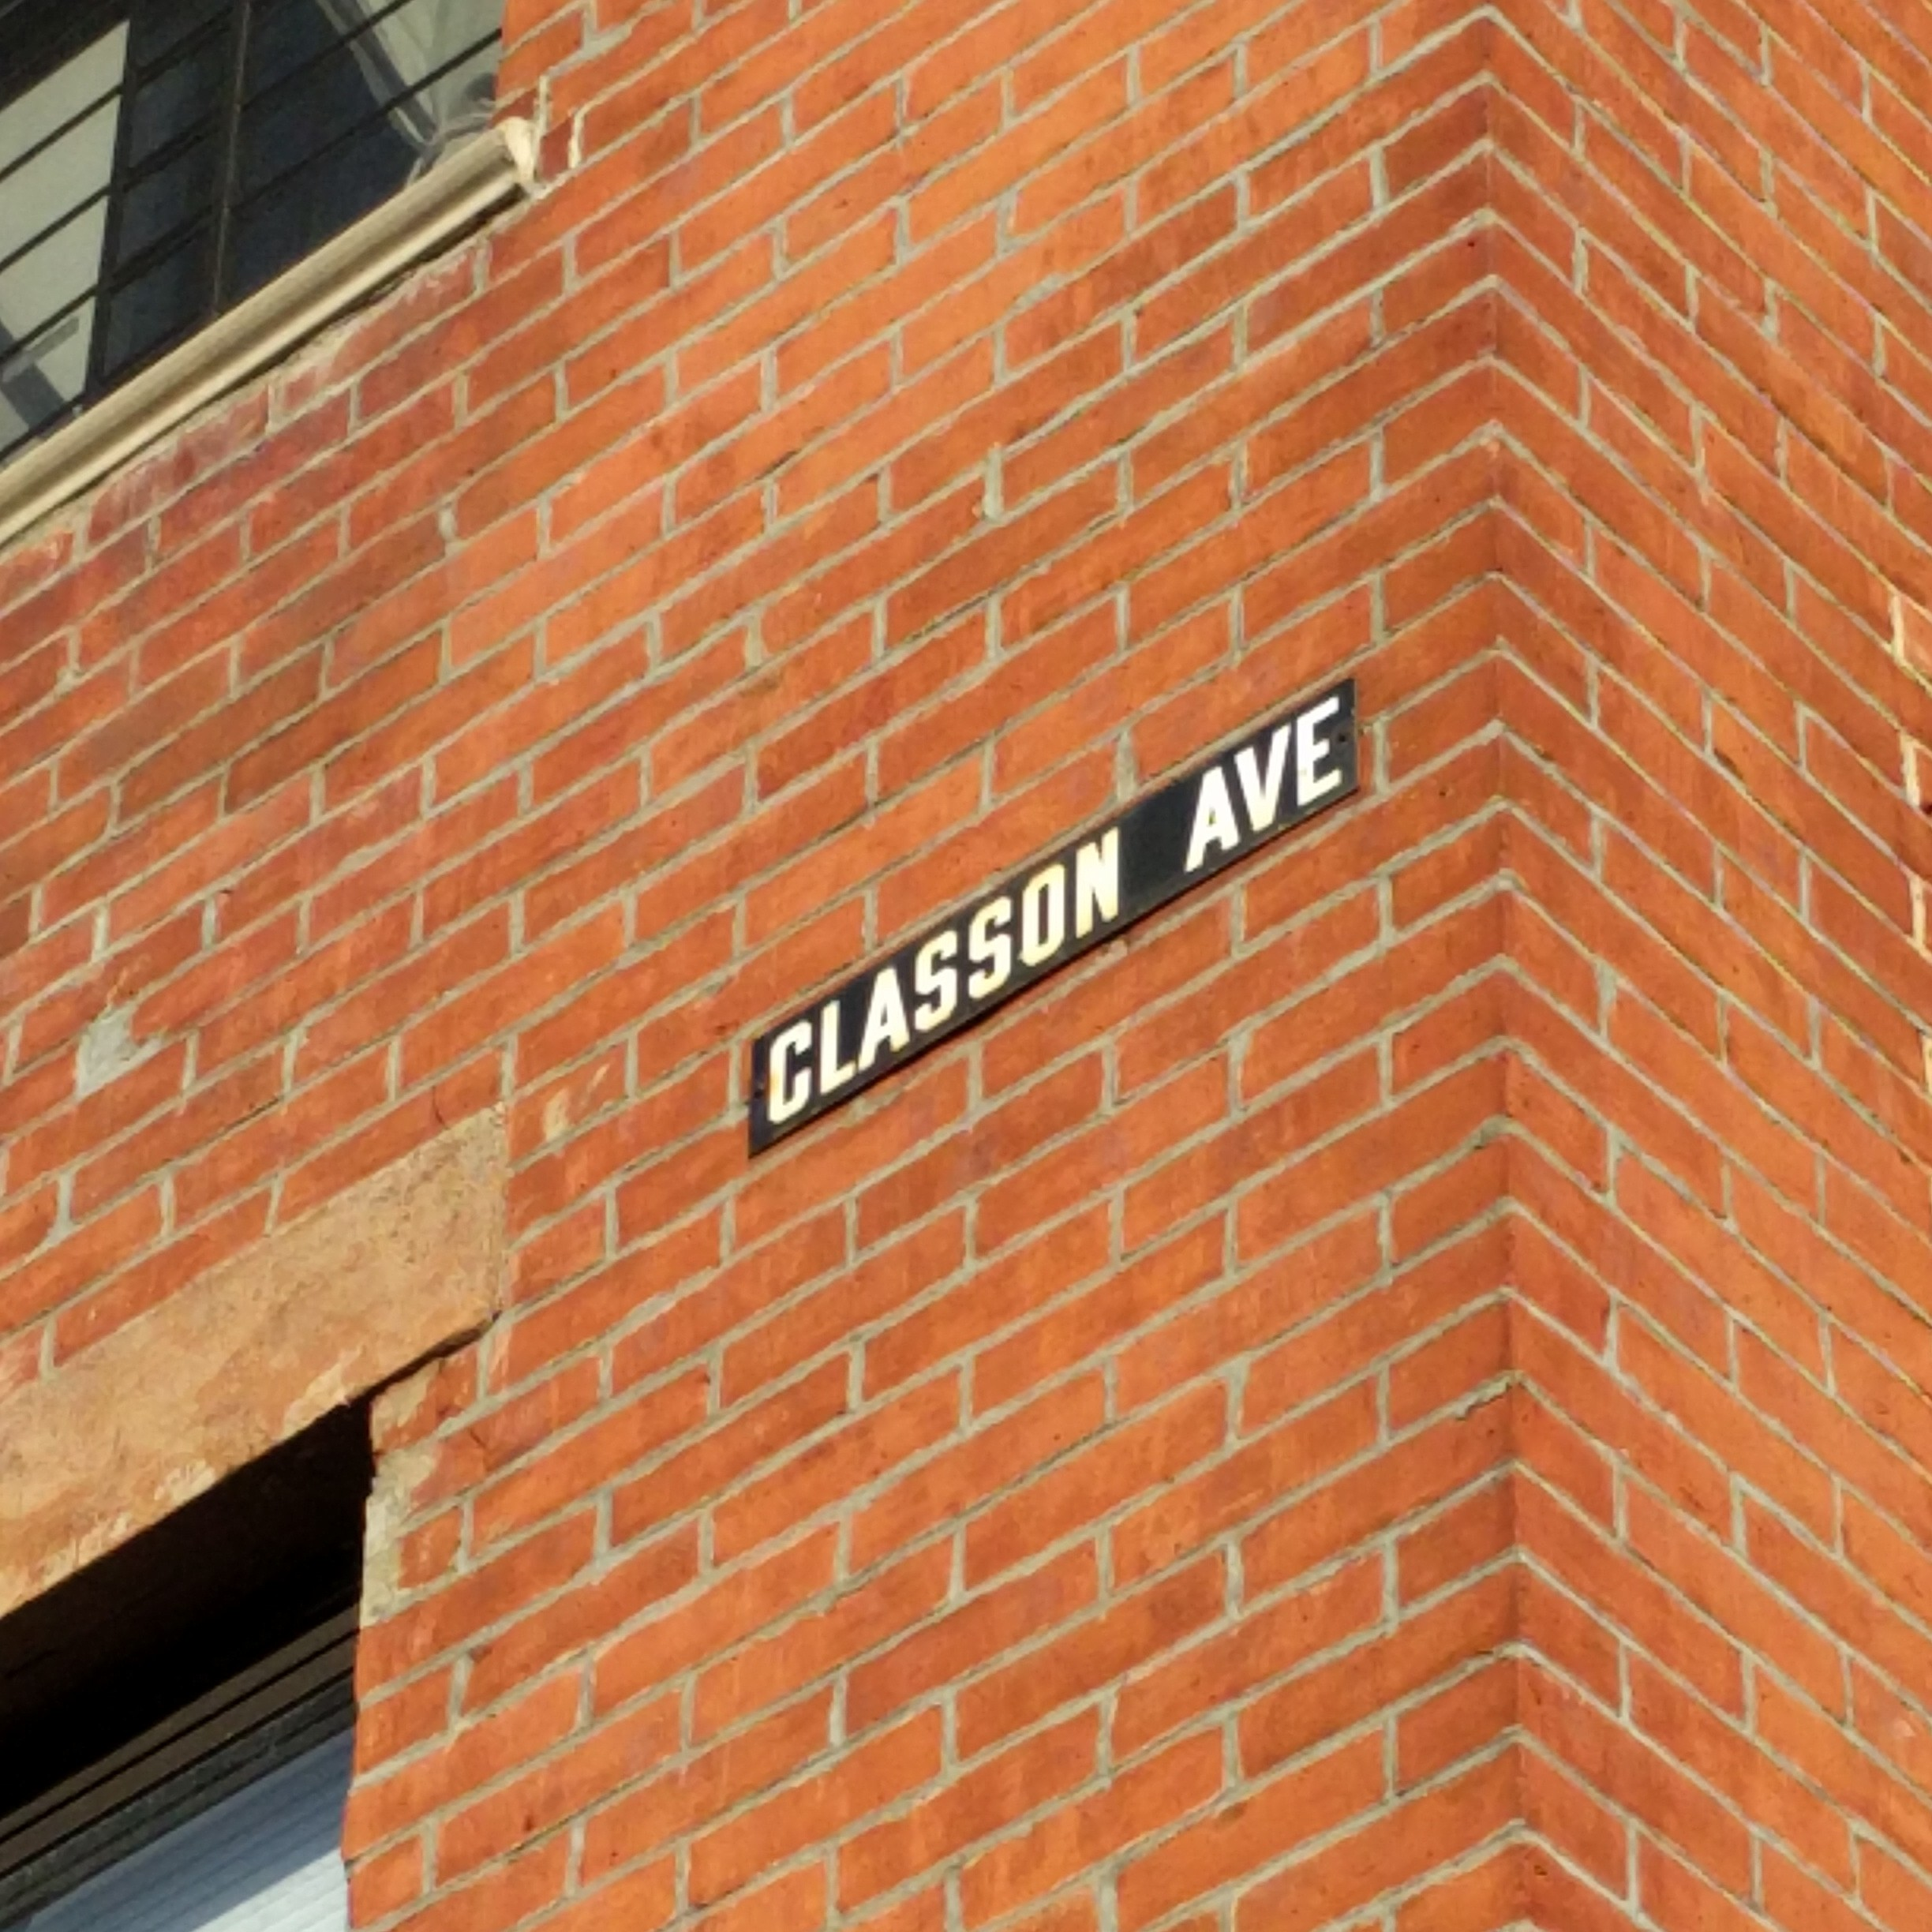 Classon Ave and Greene Ave in Bed Stuy